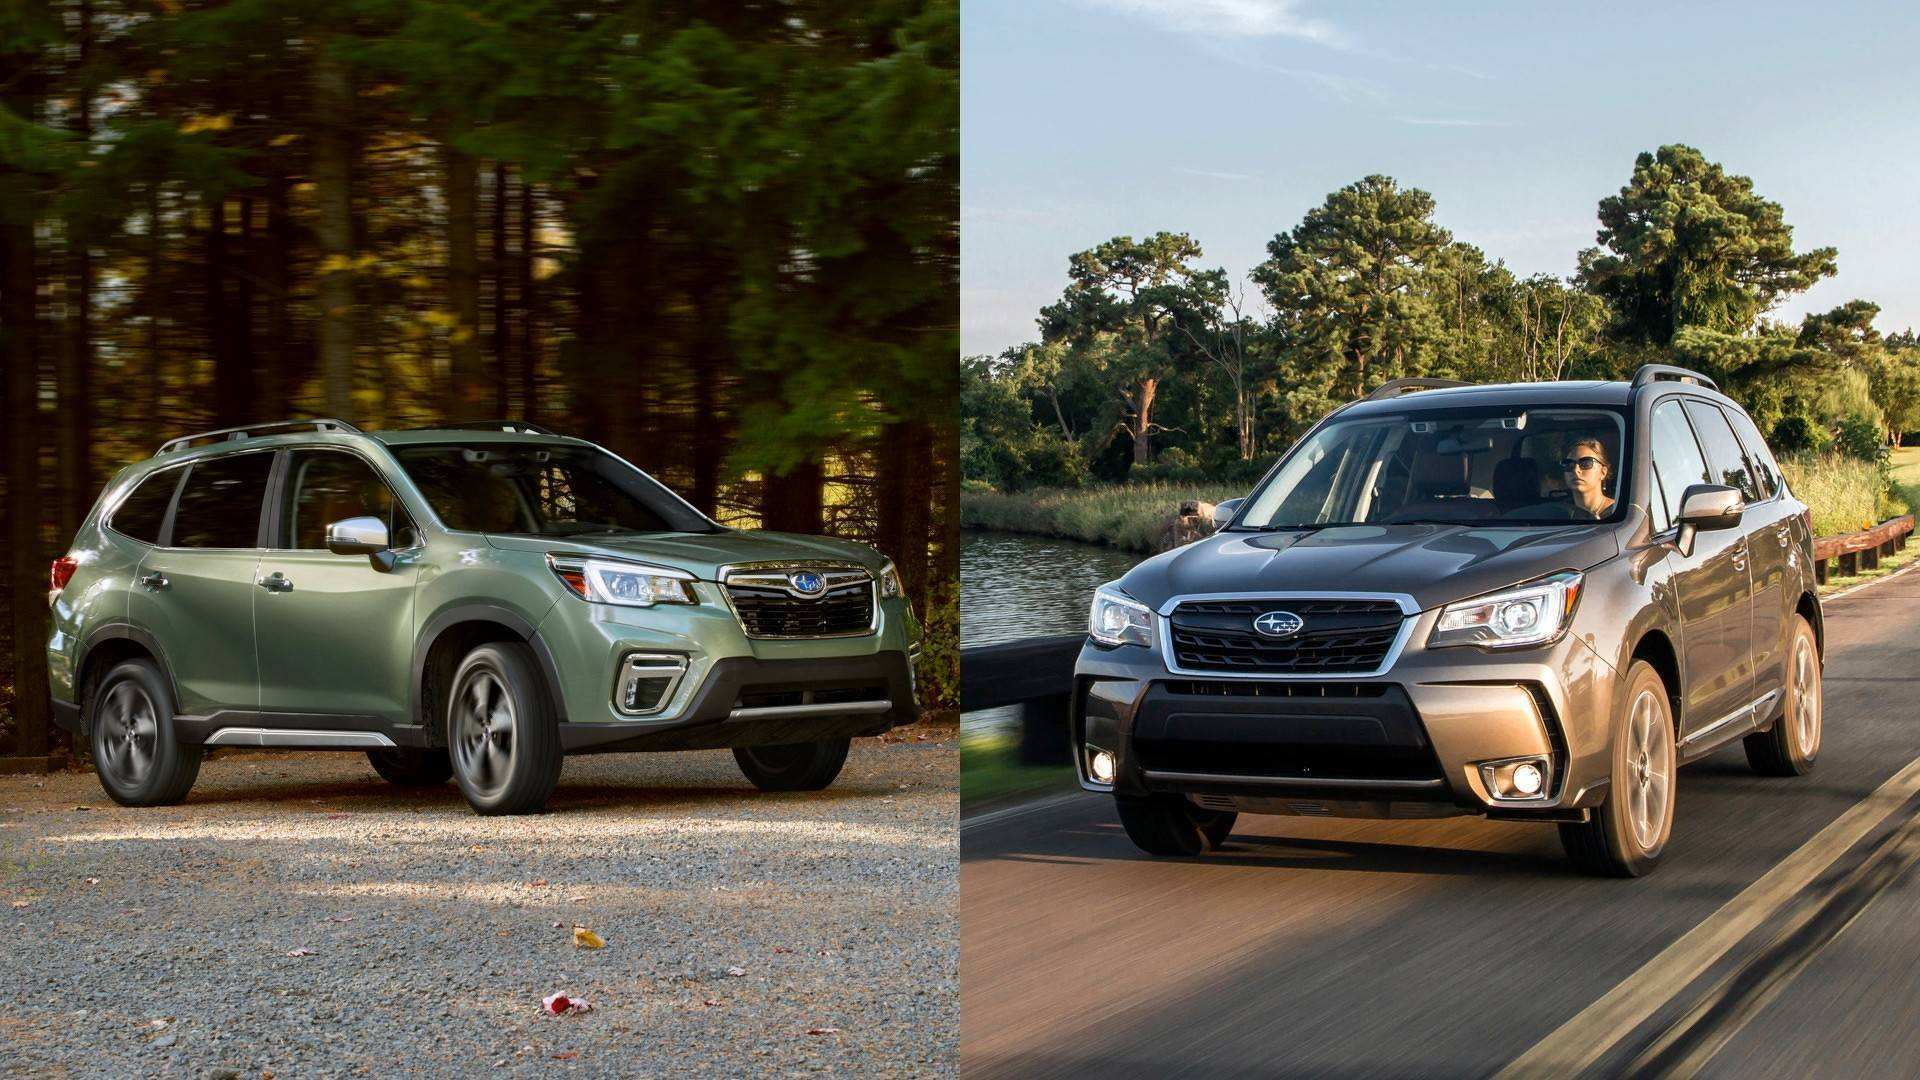 38 Great Subaru 2019 Forester Dimensions Picture Style by Subaru 2019 Forester Dimensions Picture